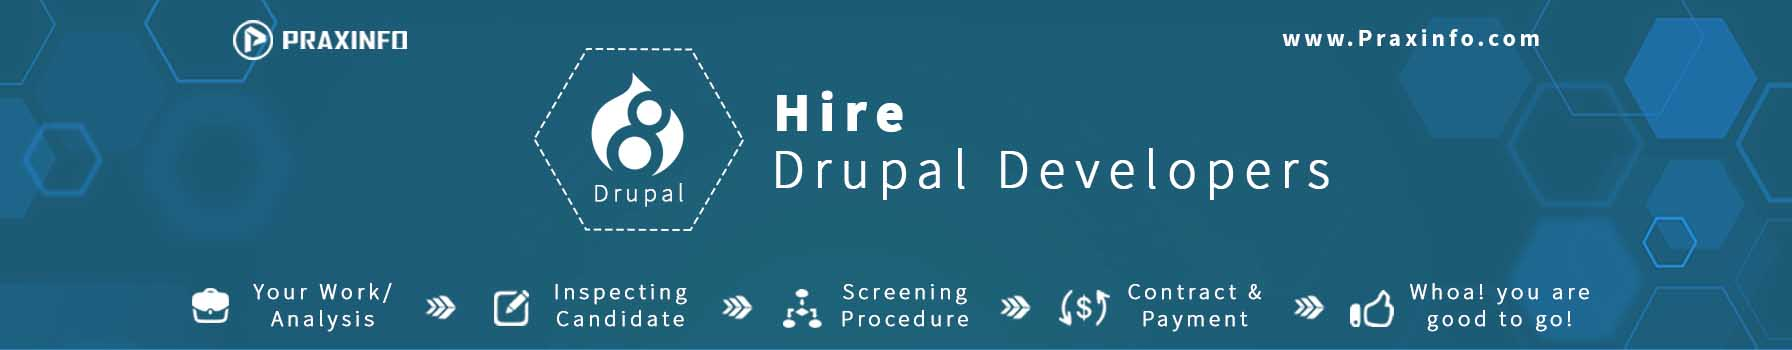 hire-drupal-developer.jpg